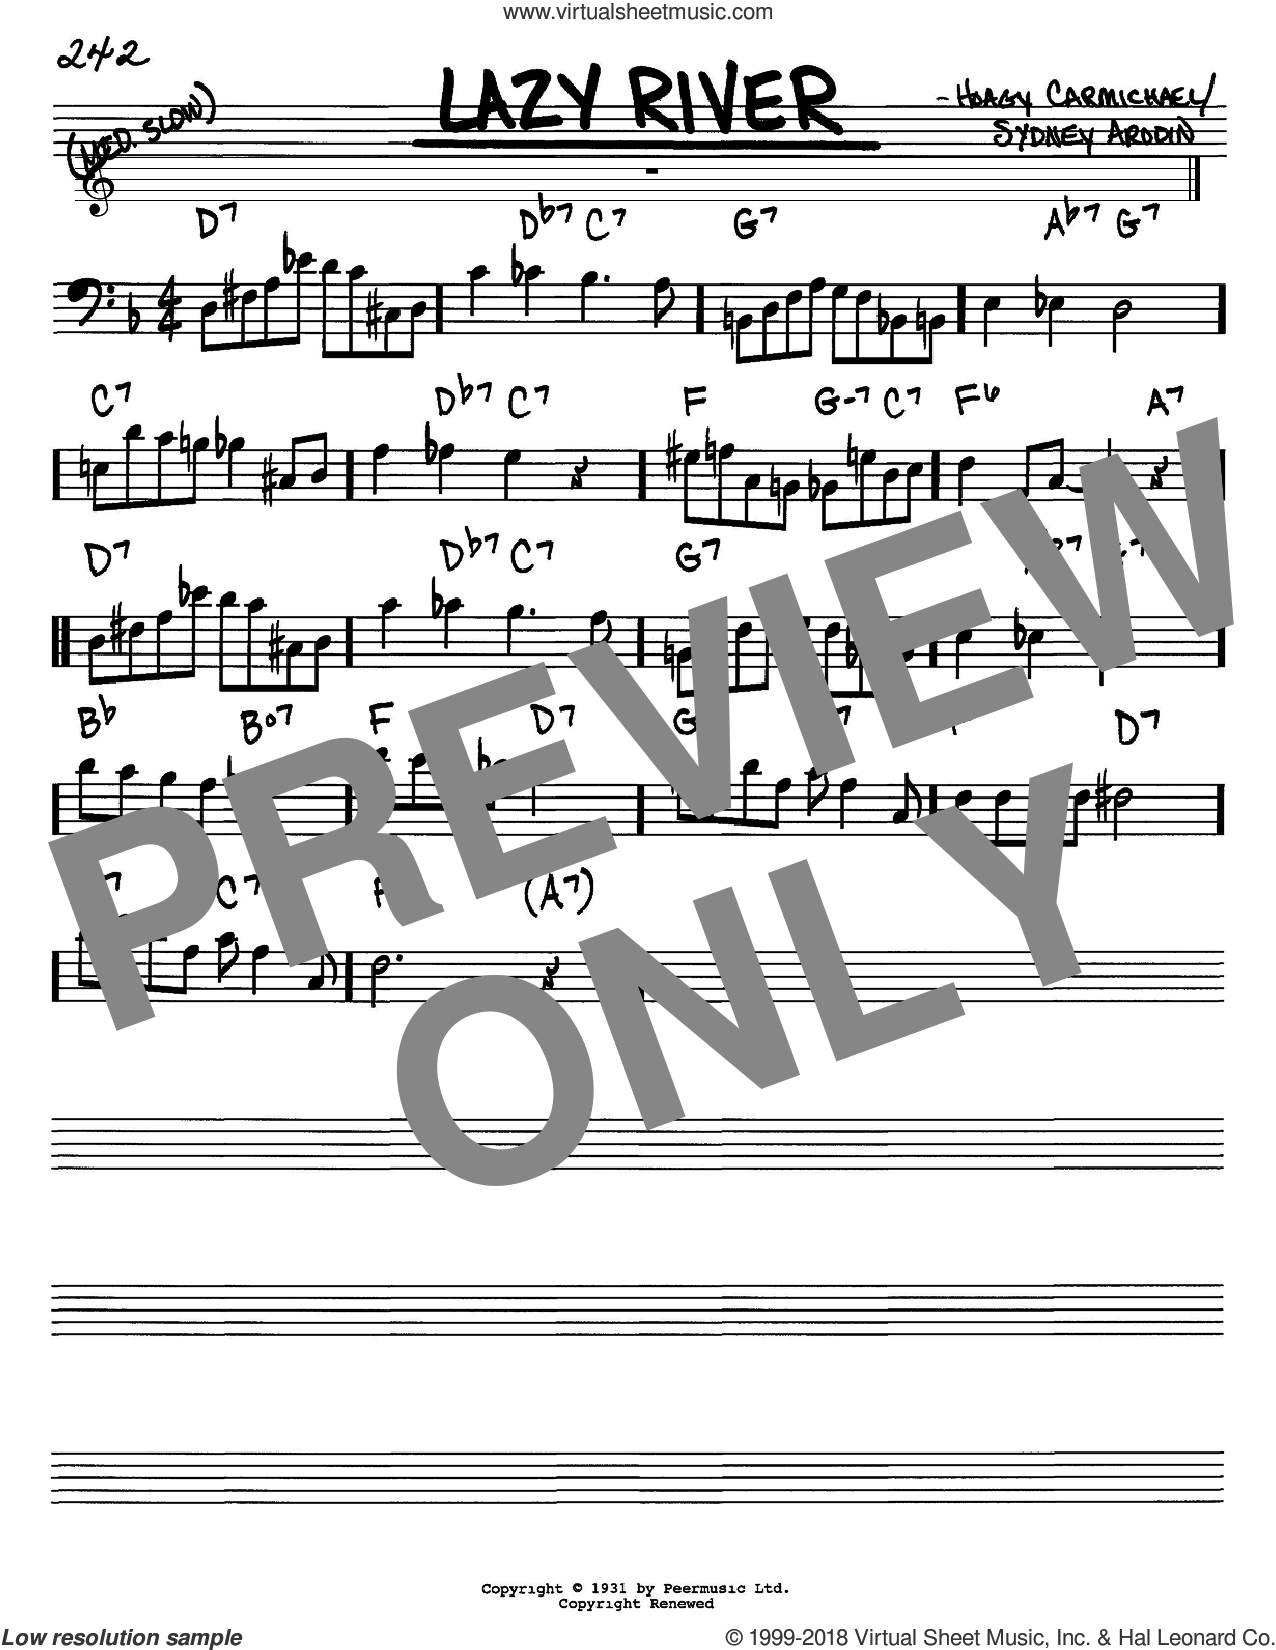 Lazy River sheet music for voice and other instruments (Bass Clef ) by Sidney Arodin